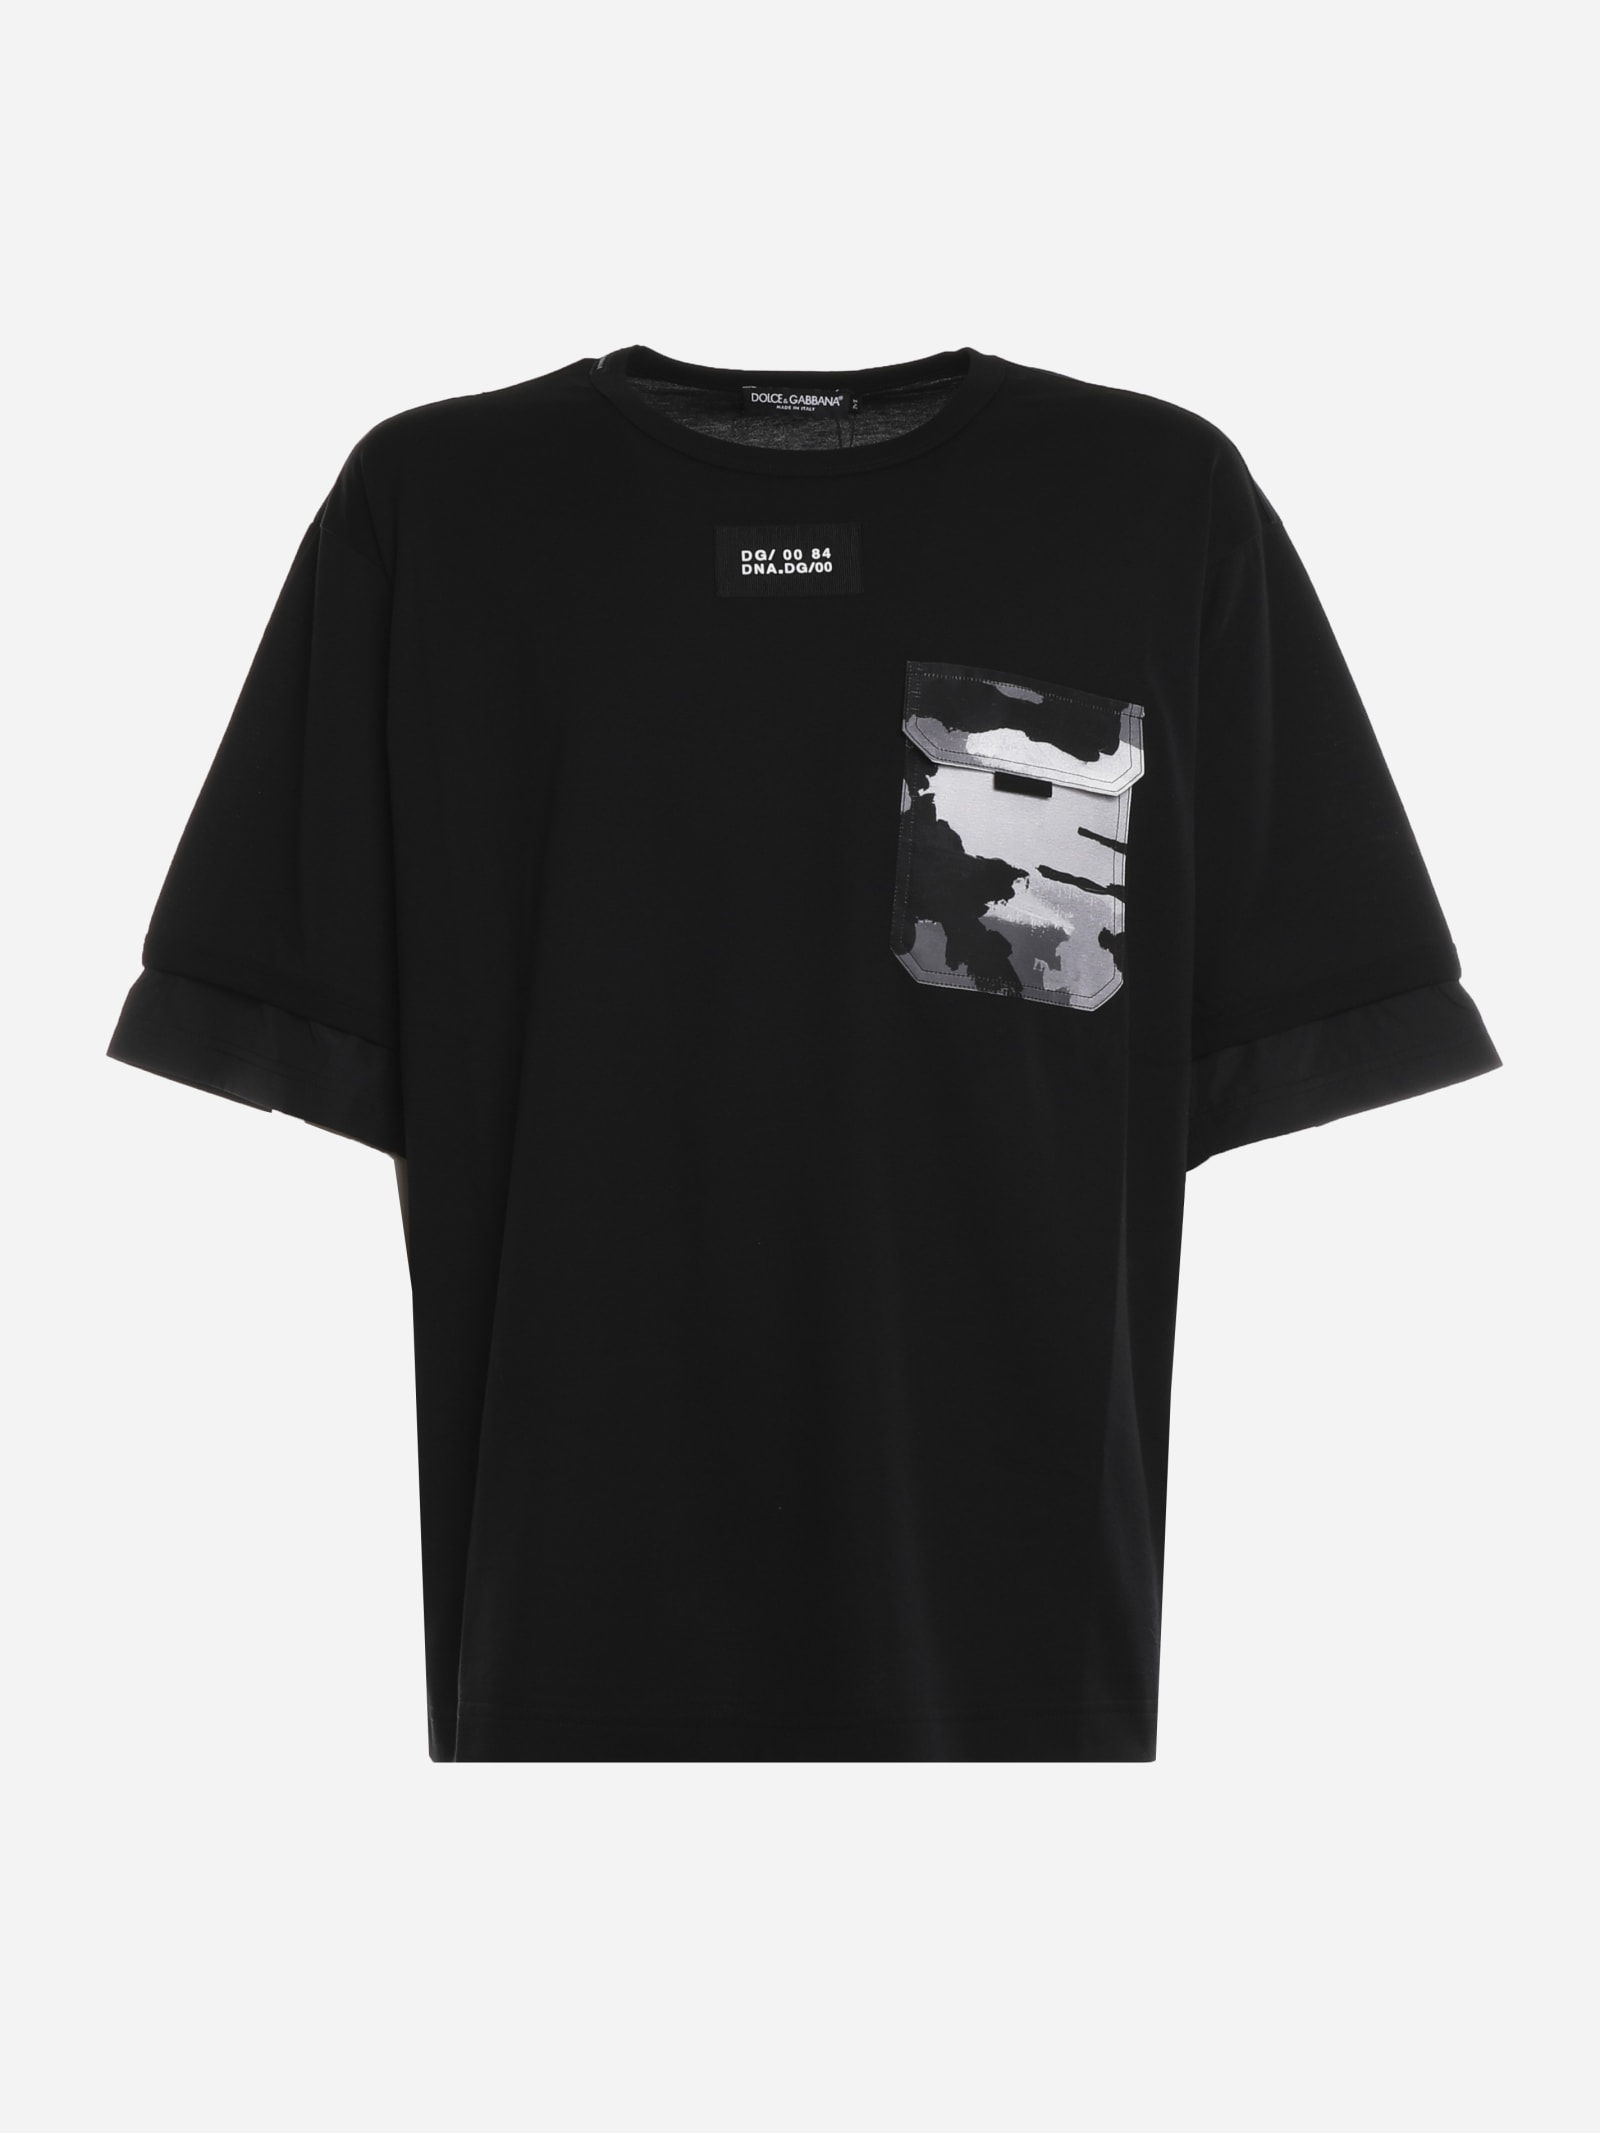 Dolce & Gabbana COTTON BLEND T-SHIRT WITH CAMOUFLAGE DETAIL